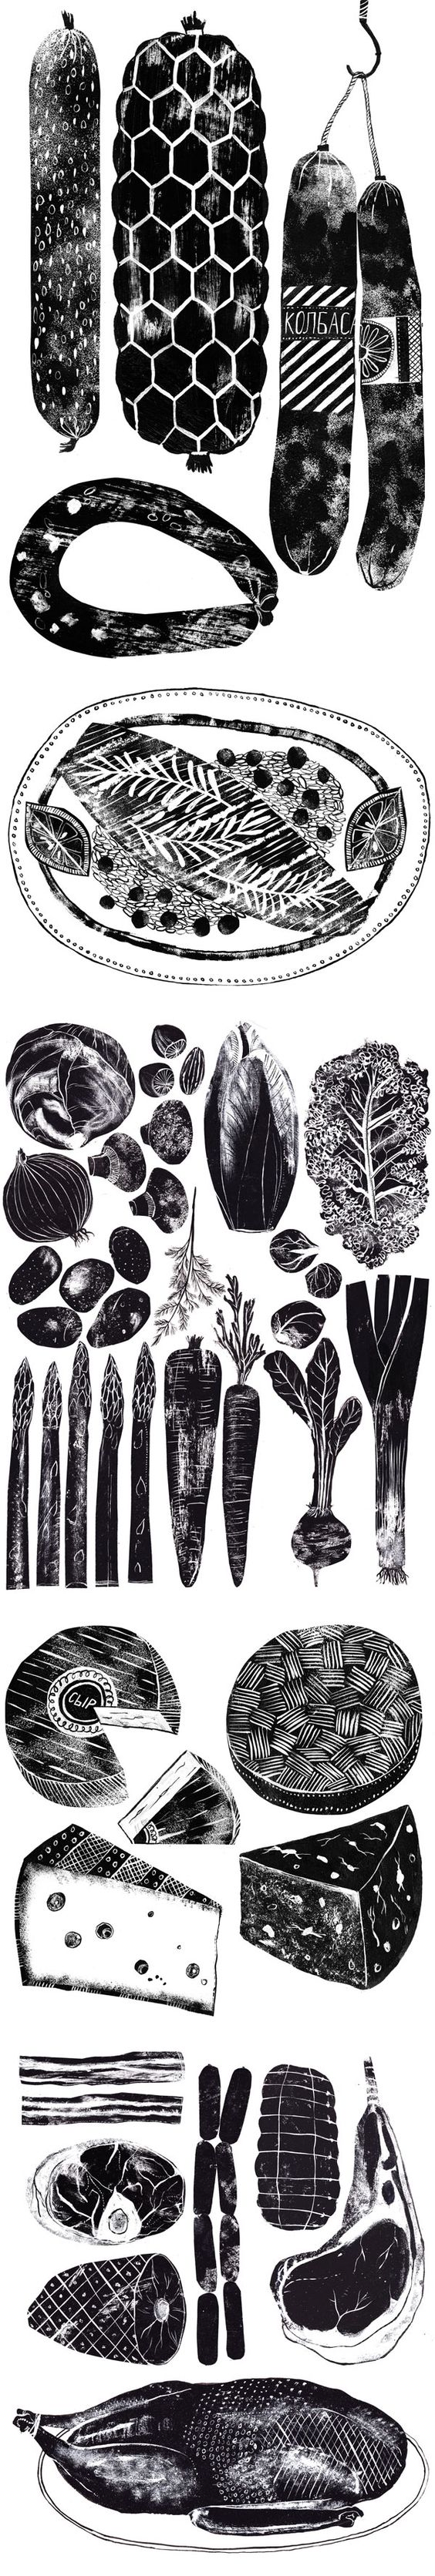 Food illustrations by Alice Pattullo. Share drawings of your favourite foodstuff for this years Big Draw by AccessArt (http://www.accessart.org.uk/join-drawmydinner-years-big-draw-accessart/). This is a group board so please email info@accessart.org.uk with your pinterest username so we can invite you to join!